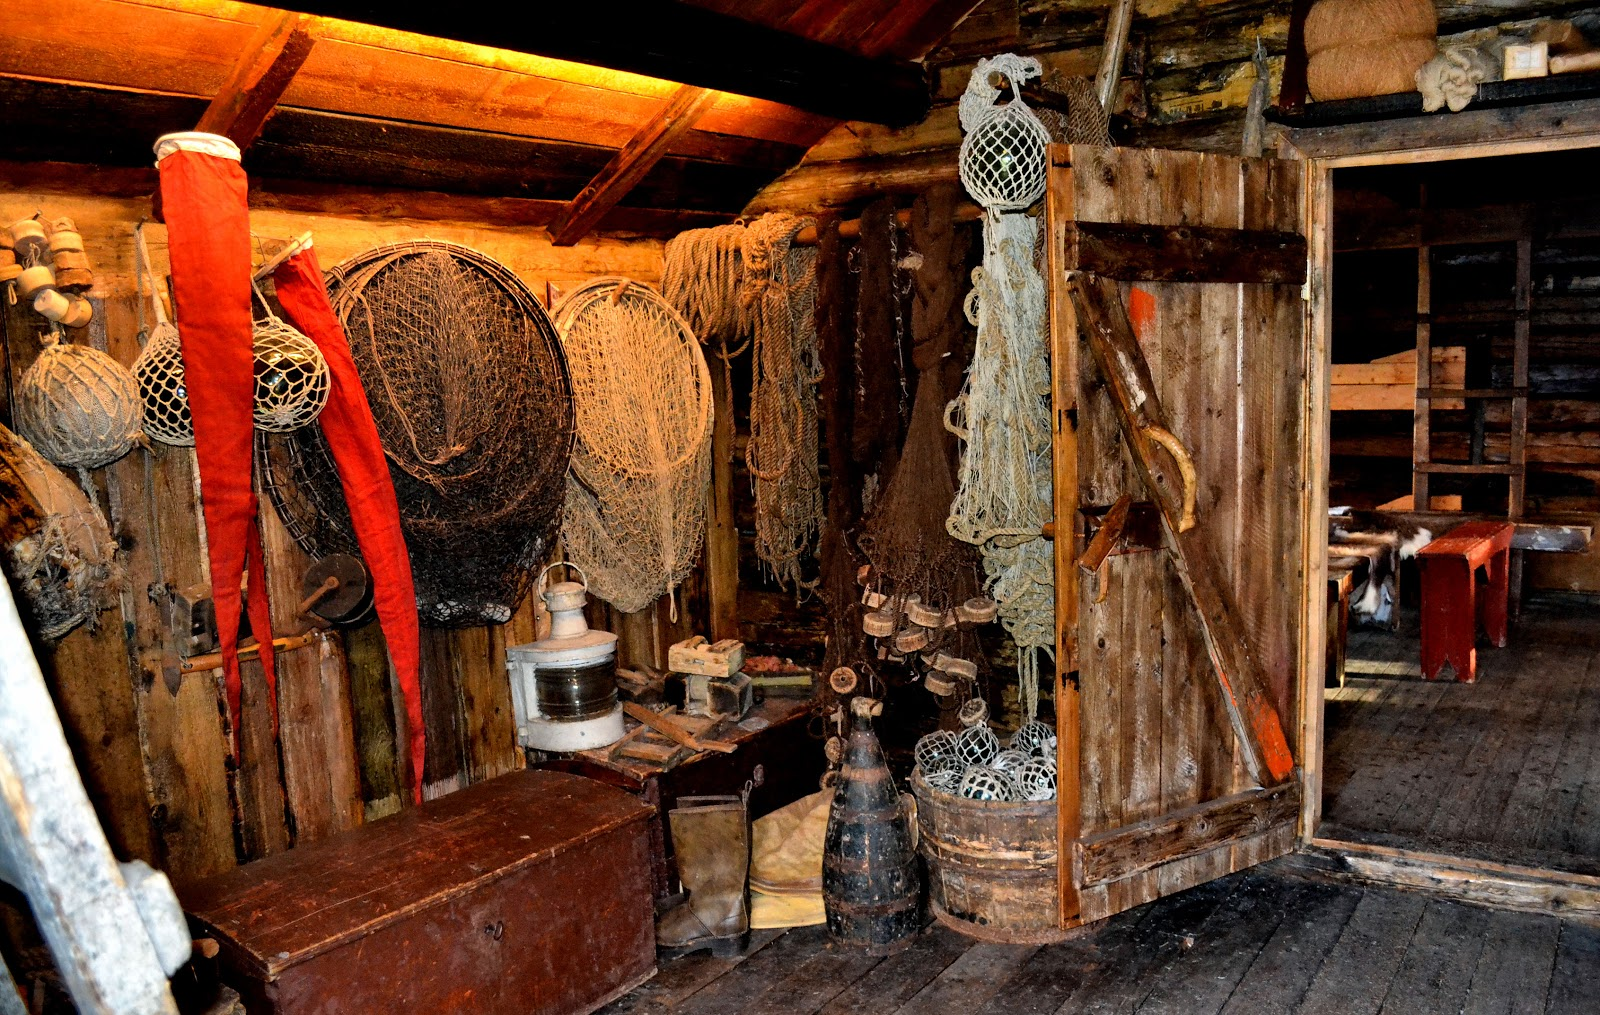 More fishing equipment stored in the first room of the rorbu cabin.